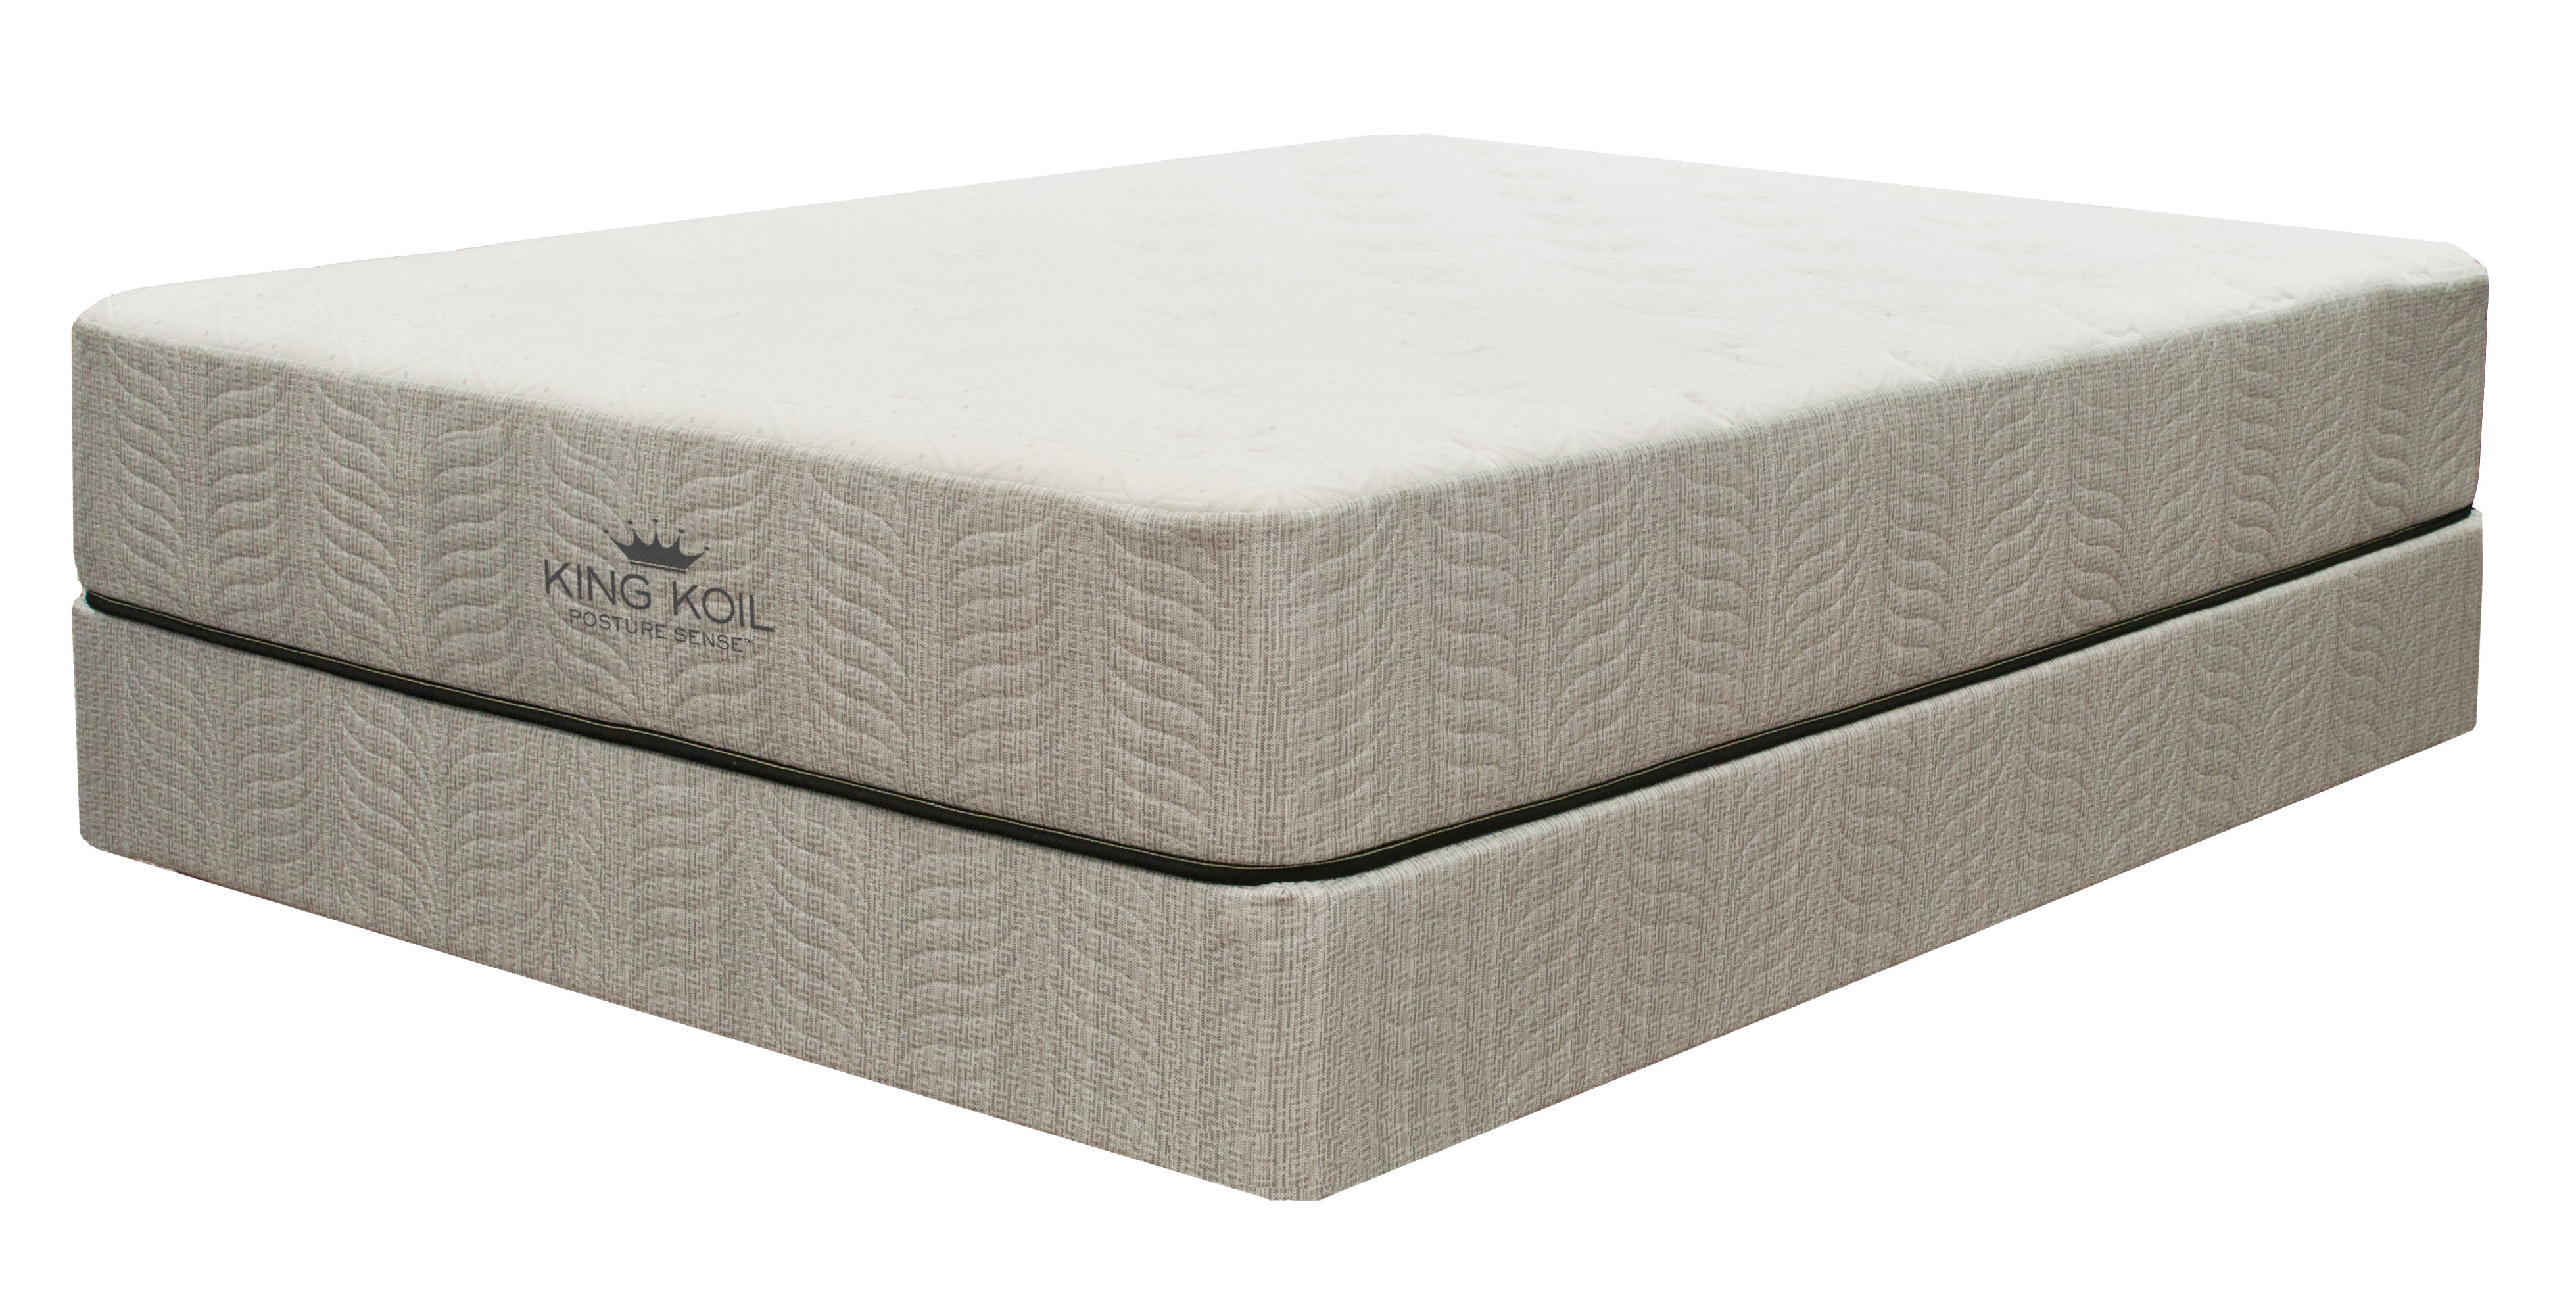 the technogel most invitation vive press only sleeping sumptuous review mattress its introduced reviews at yet restonic collection sleep luxury ws experience line unveils luxurious cutting edge